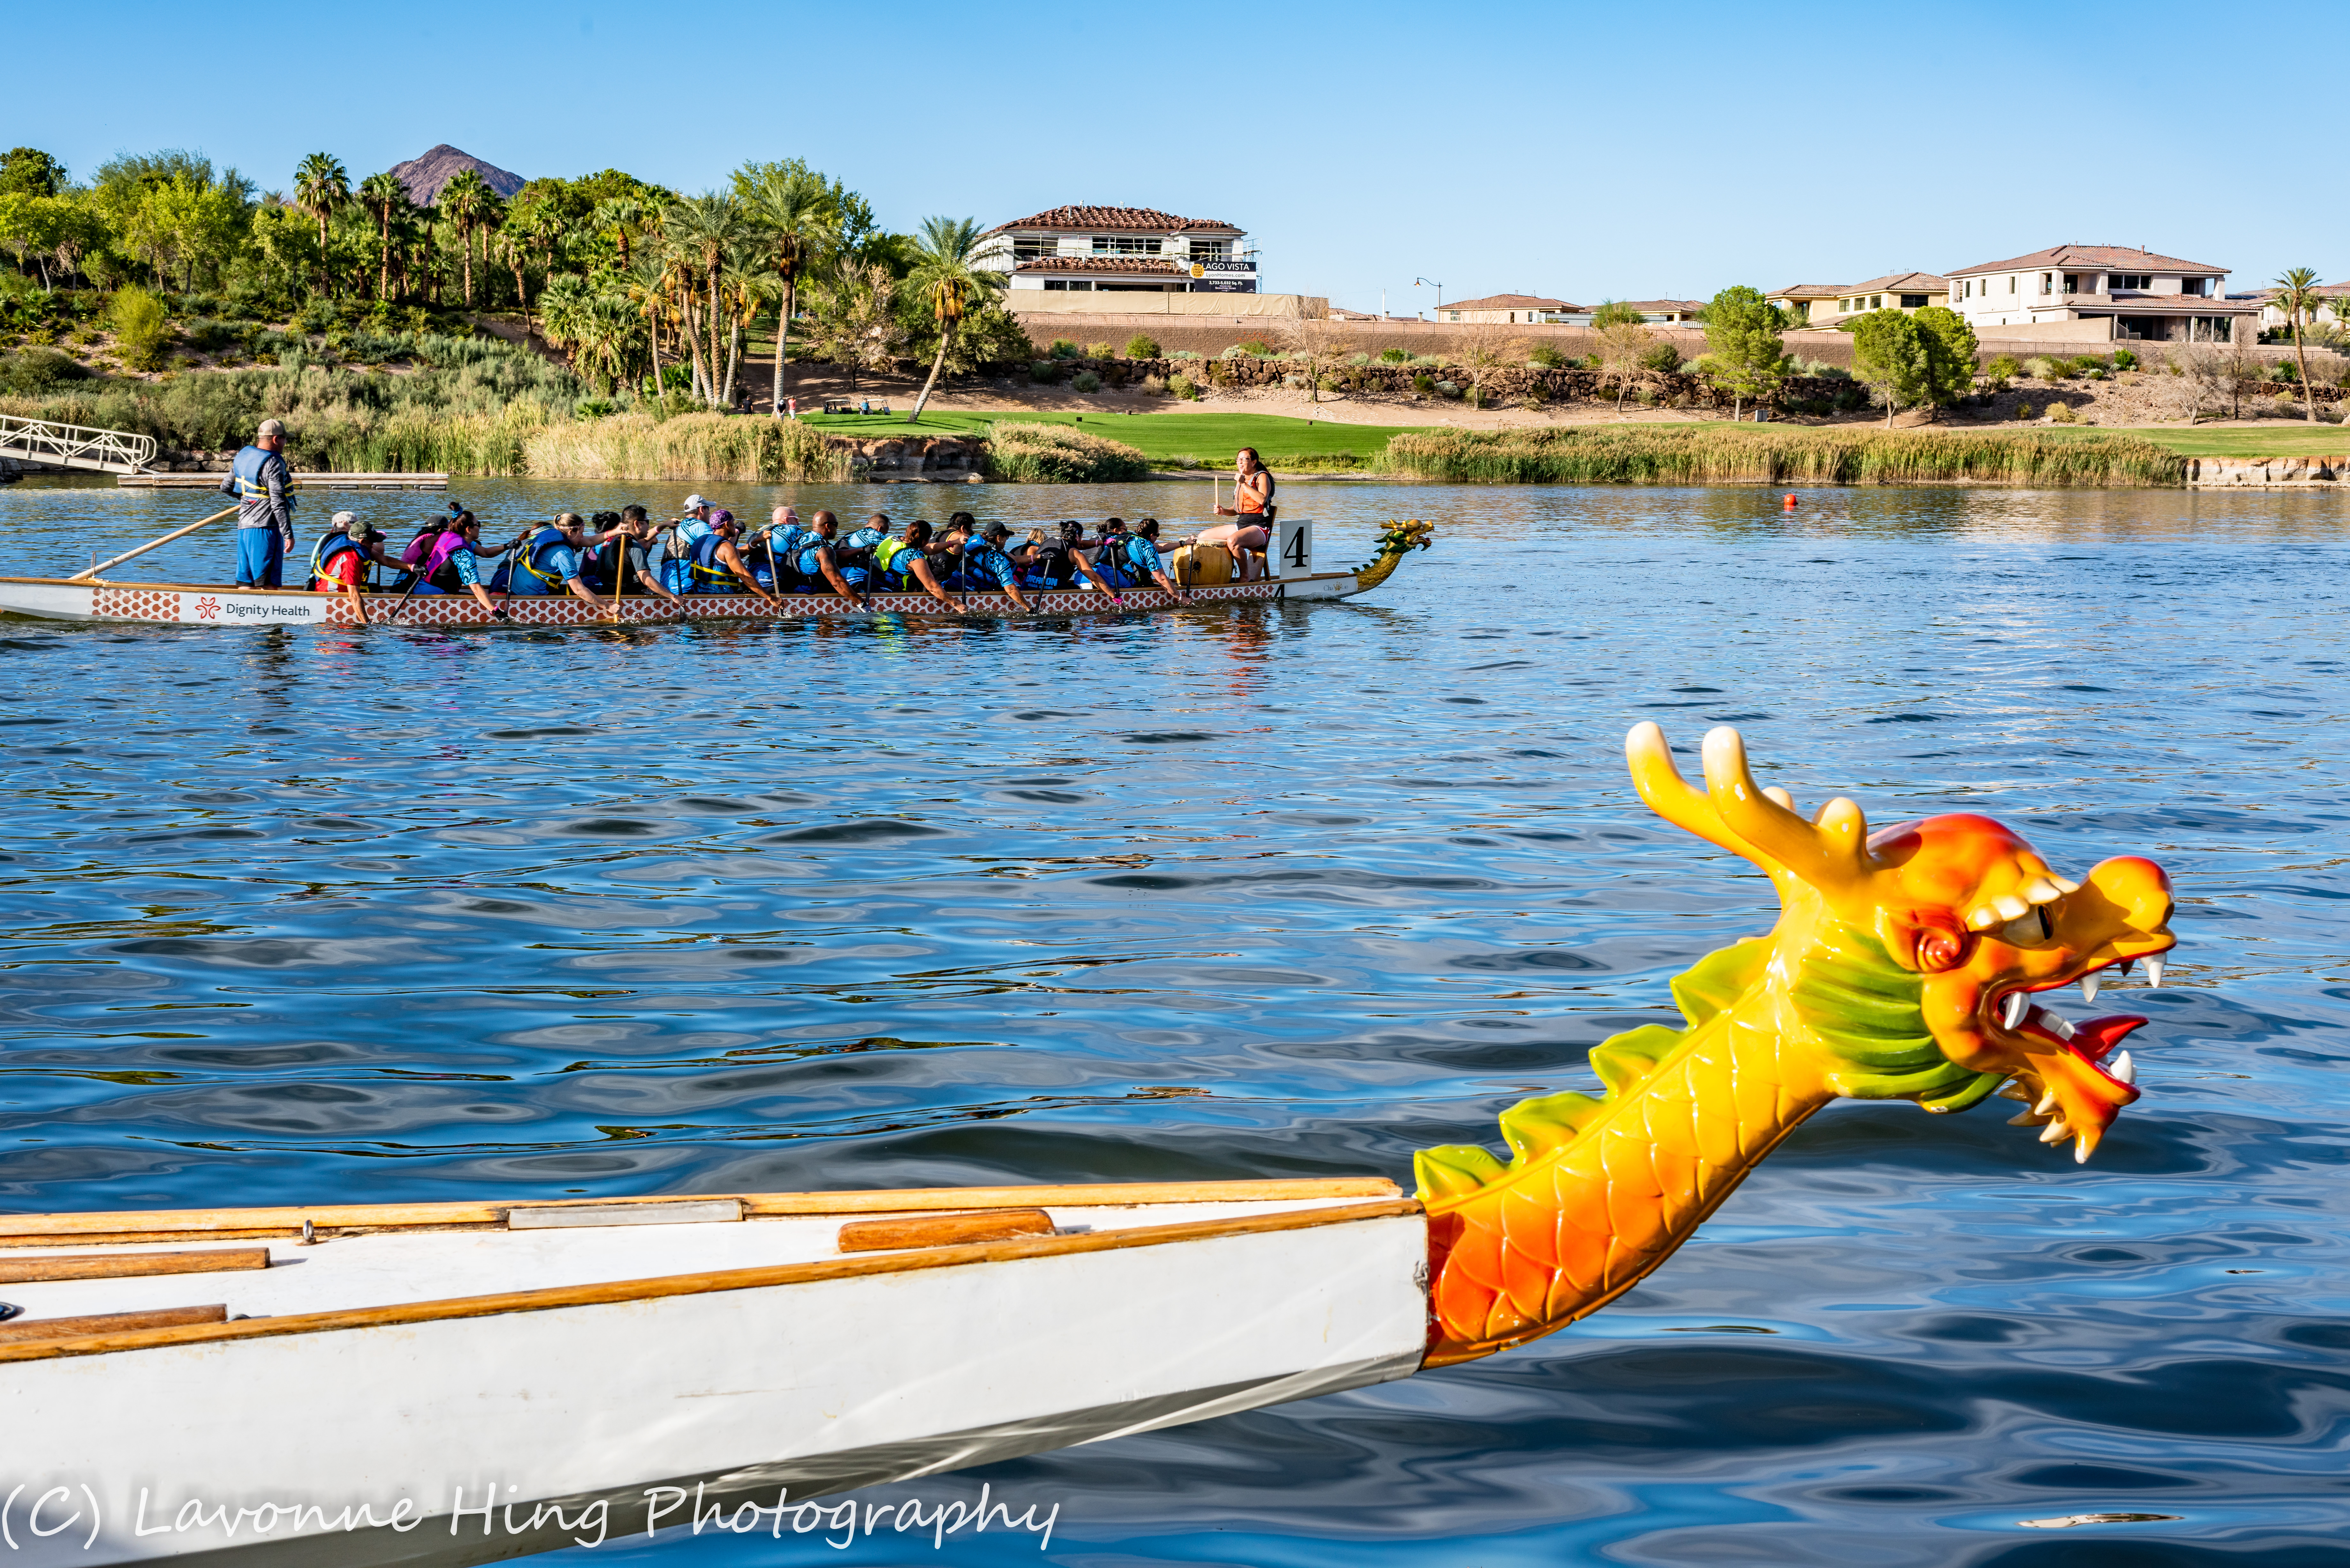 One dragon boat full of rowers on the water, and  a yellow dragon head on another boat